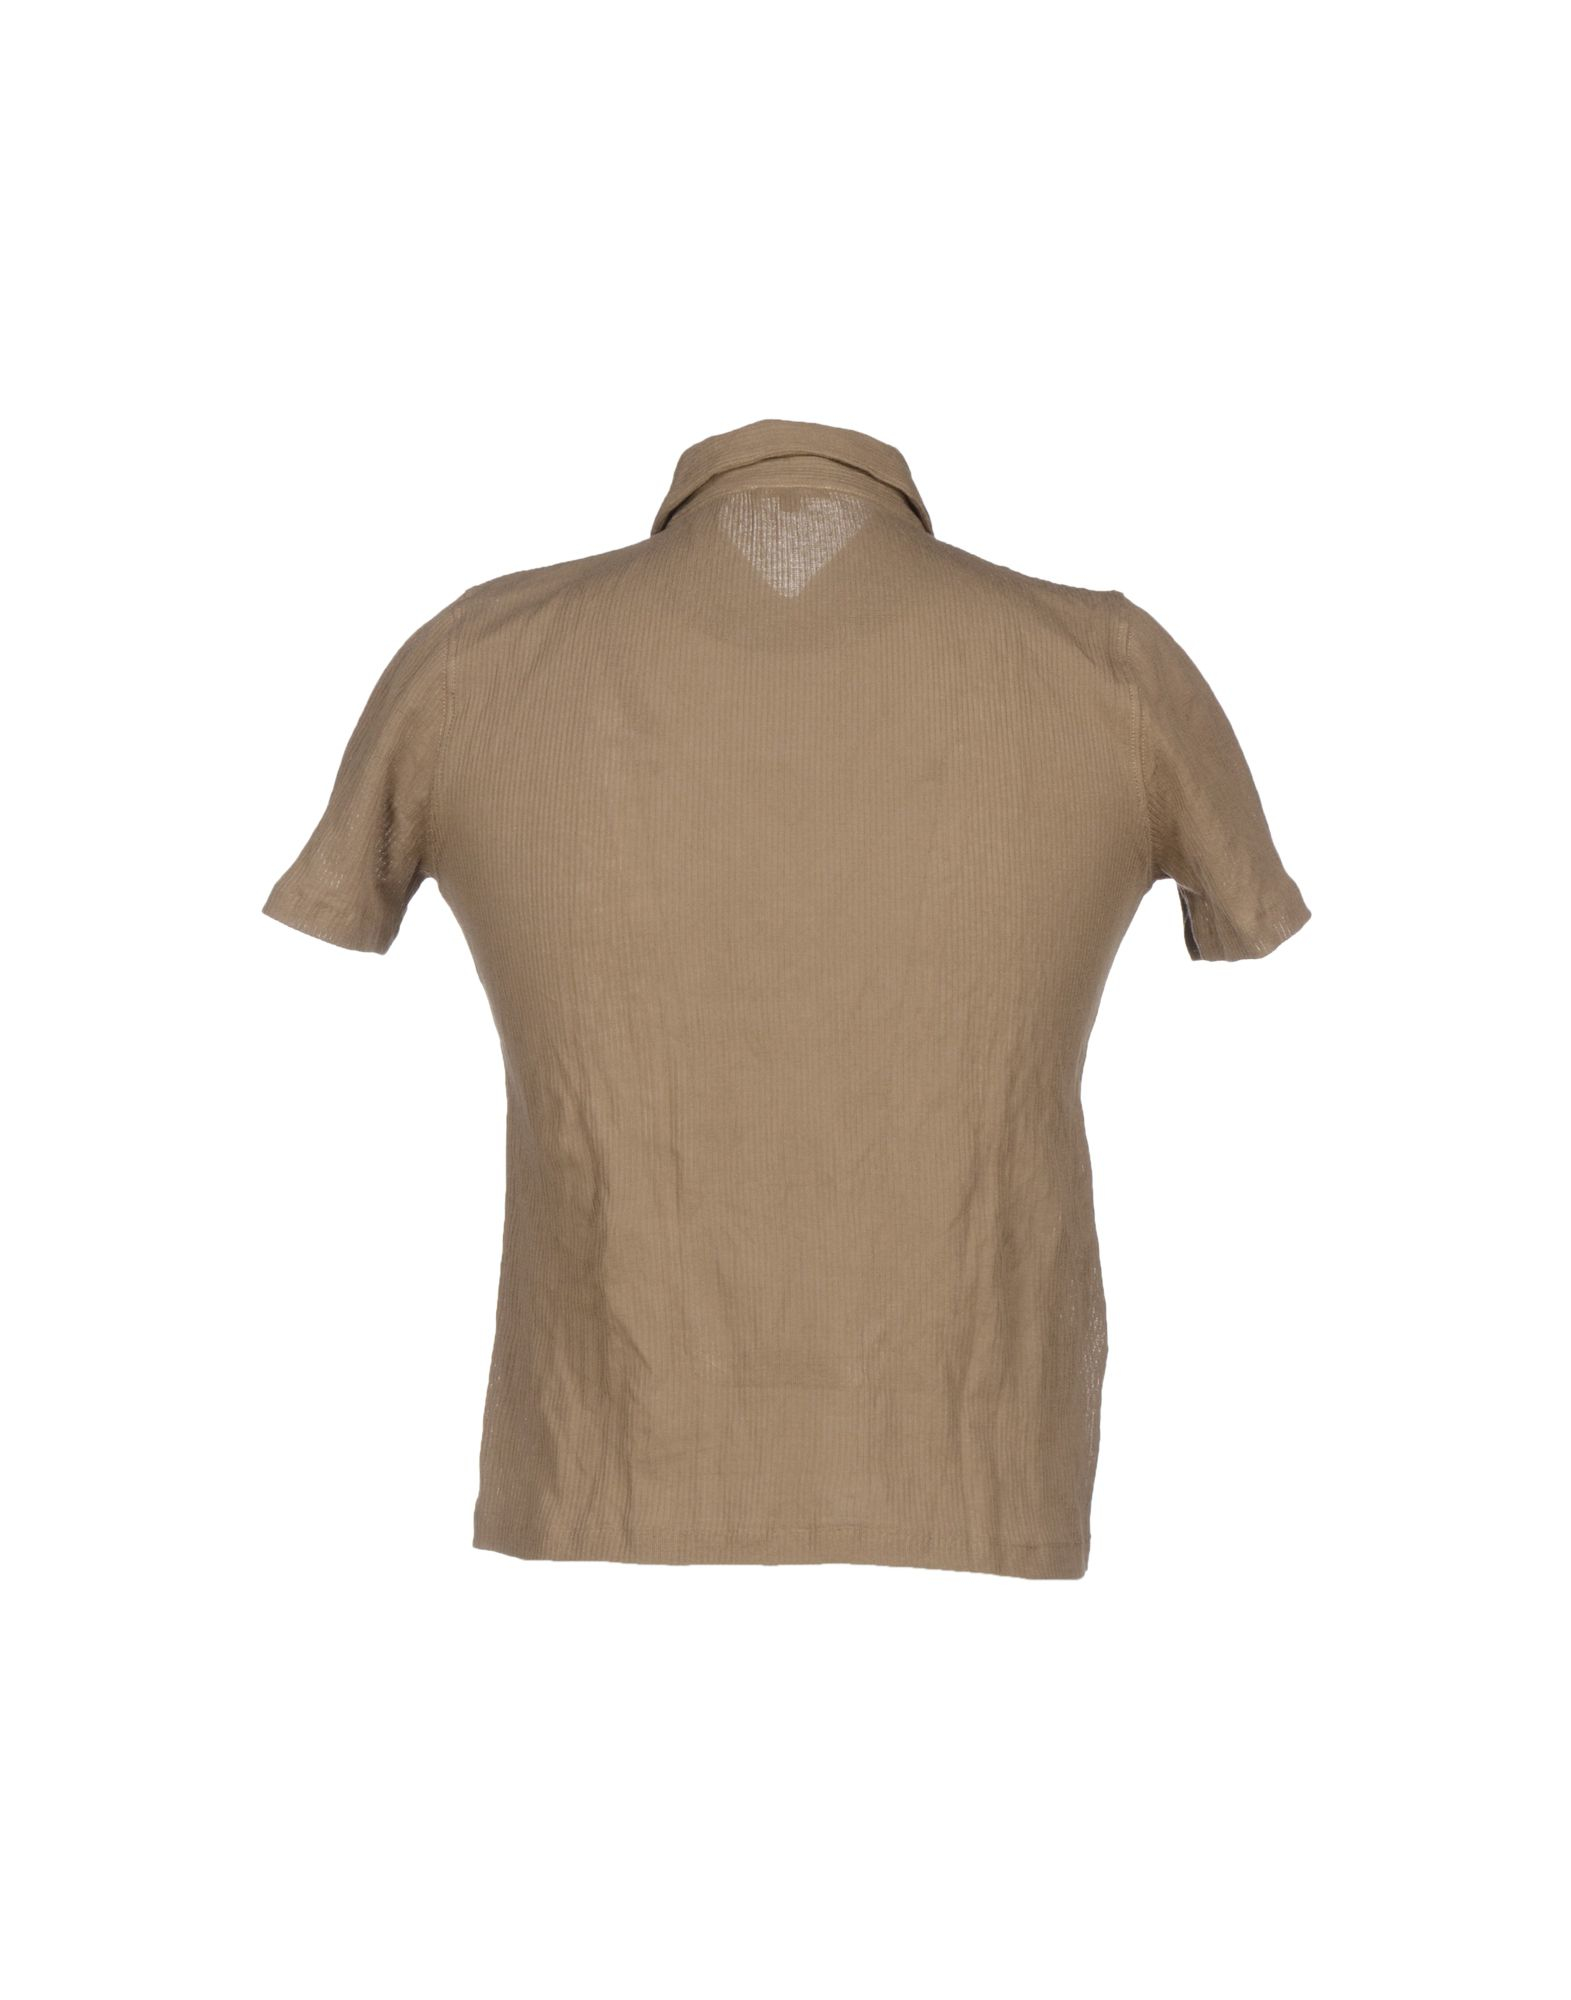 Cruciani polo shirt in brown for men lyst for Light brown polo shirt